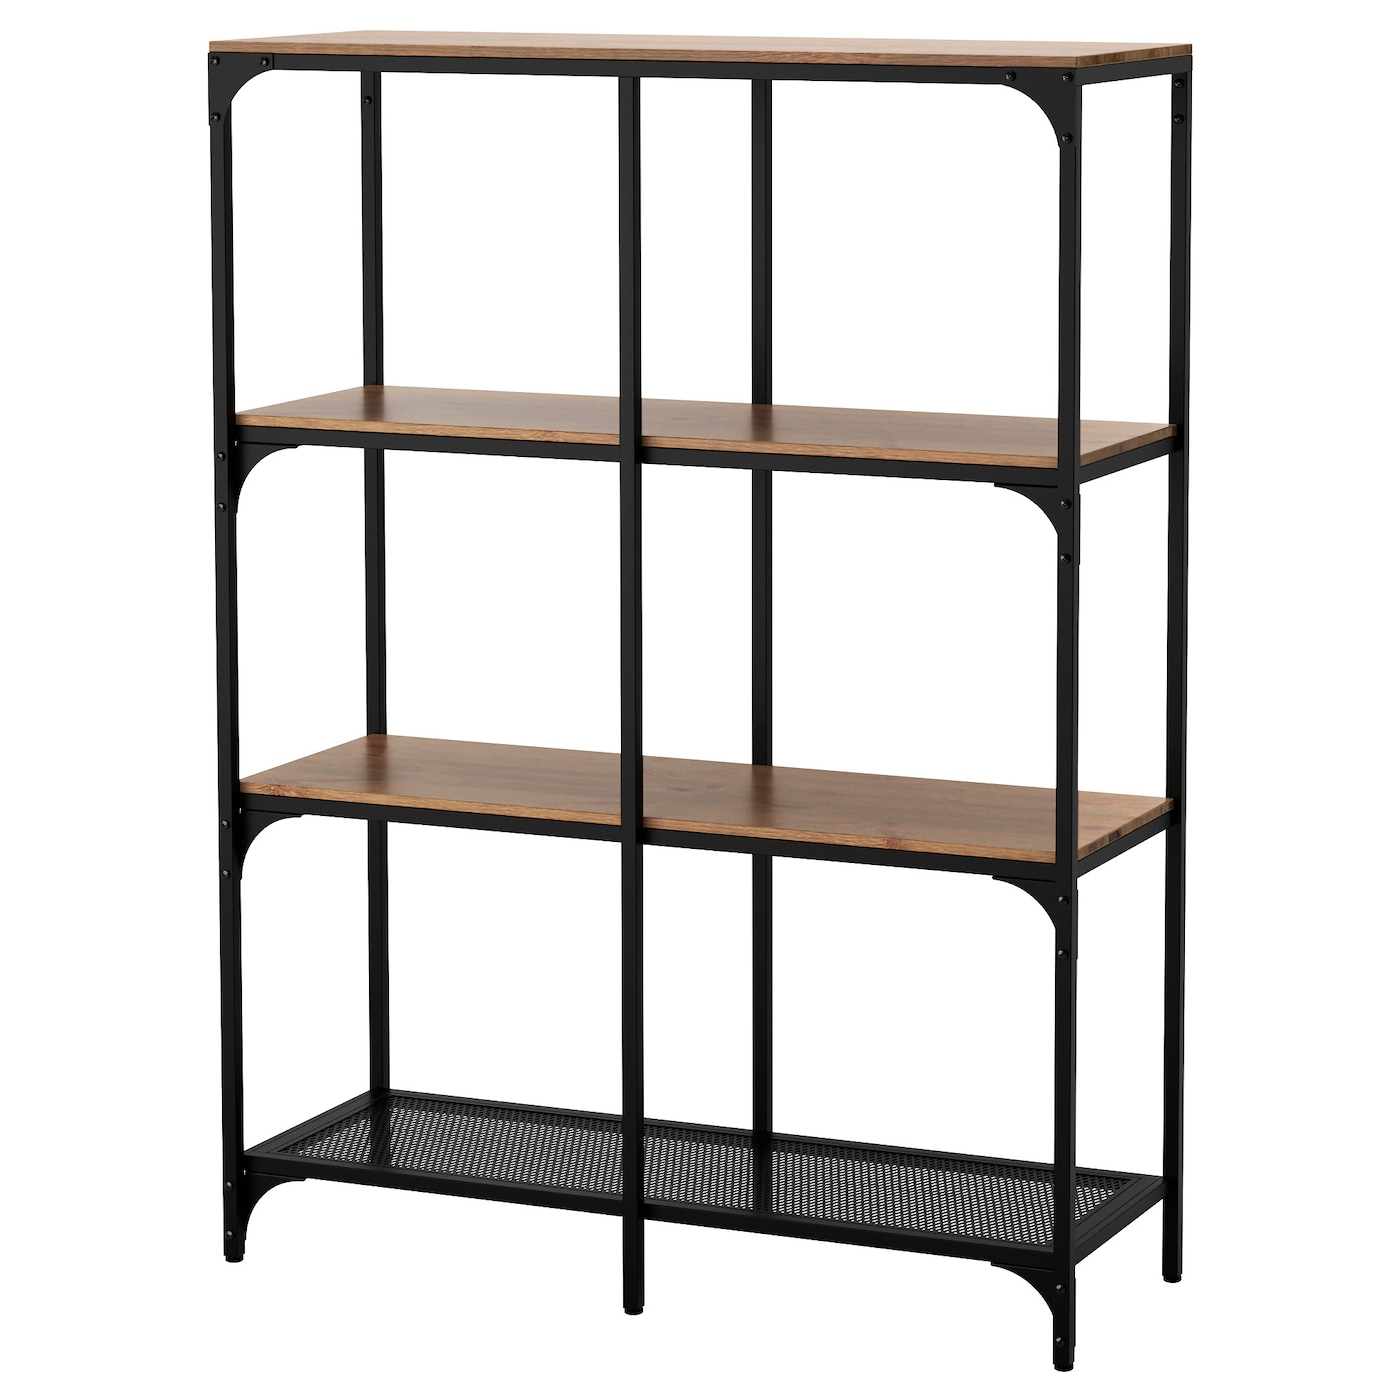 fj llbo shelving unit black 100x136 cm ikea. Black Bedroom Furniture Sets. Home Design Ideas